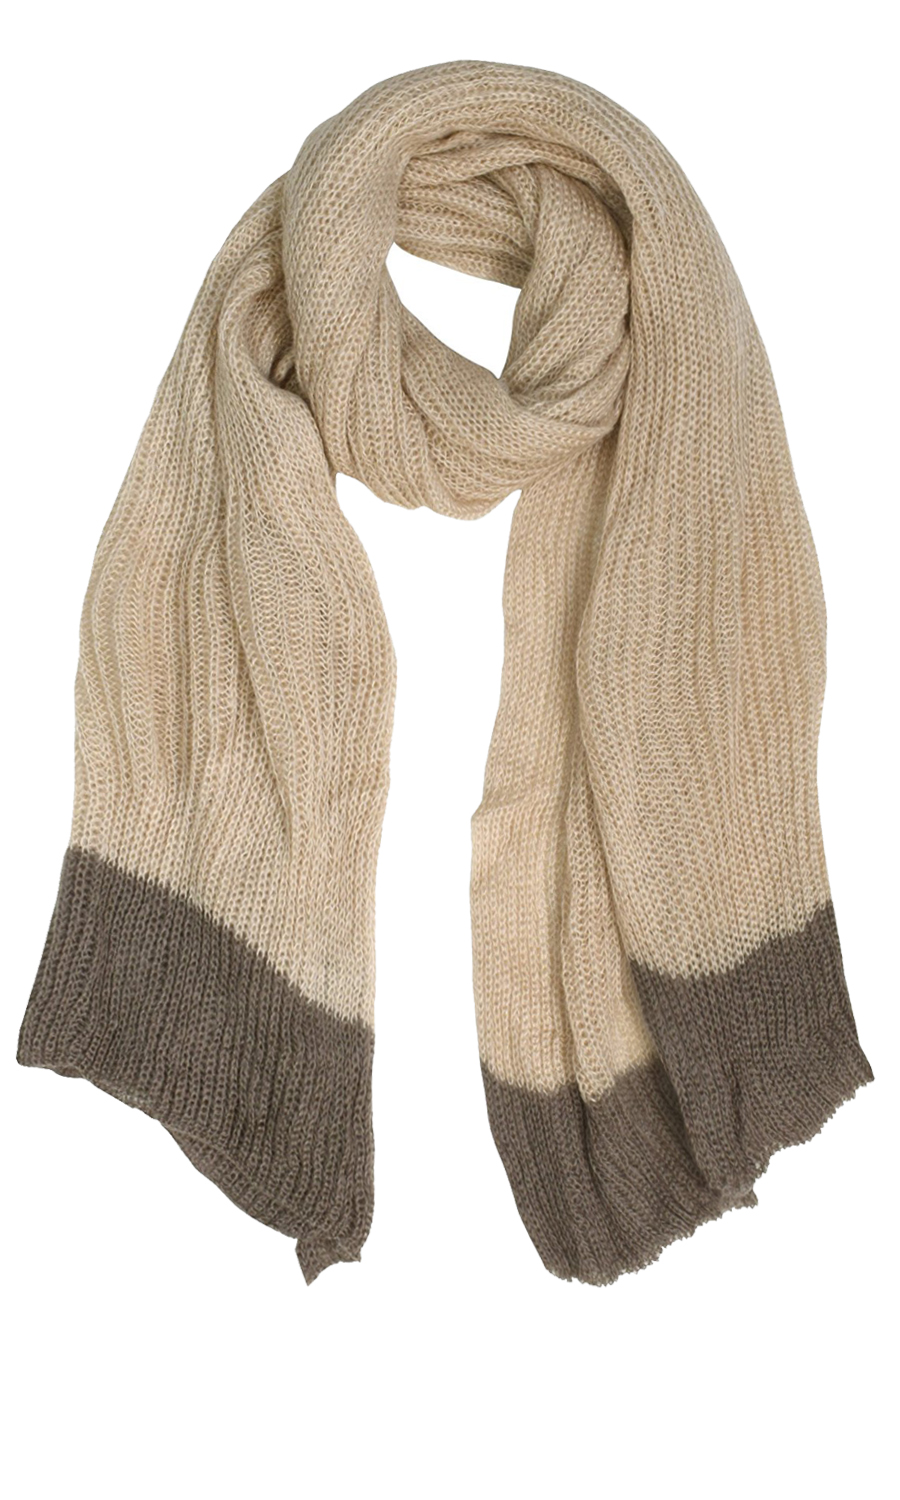 Oatmeal Loose Border Hand Knit Warm Scarf Wrap